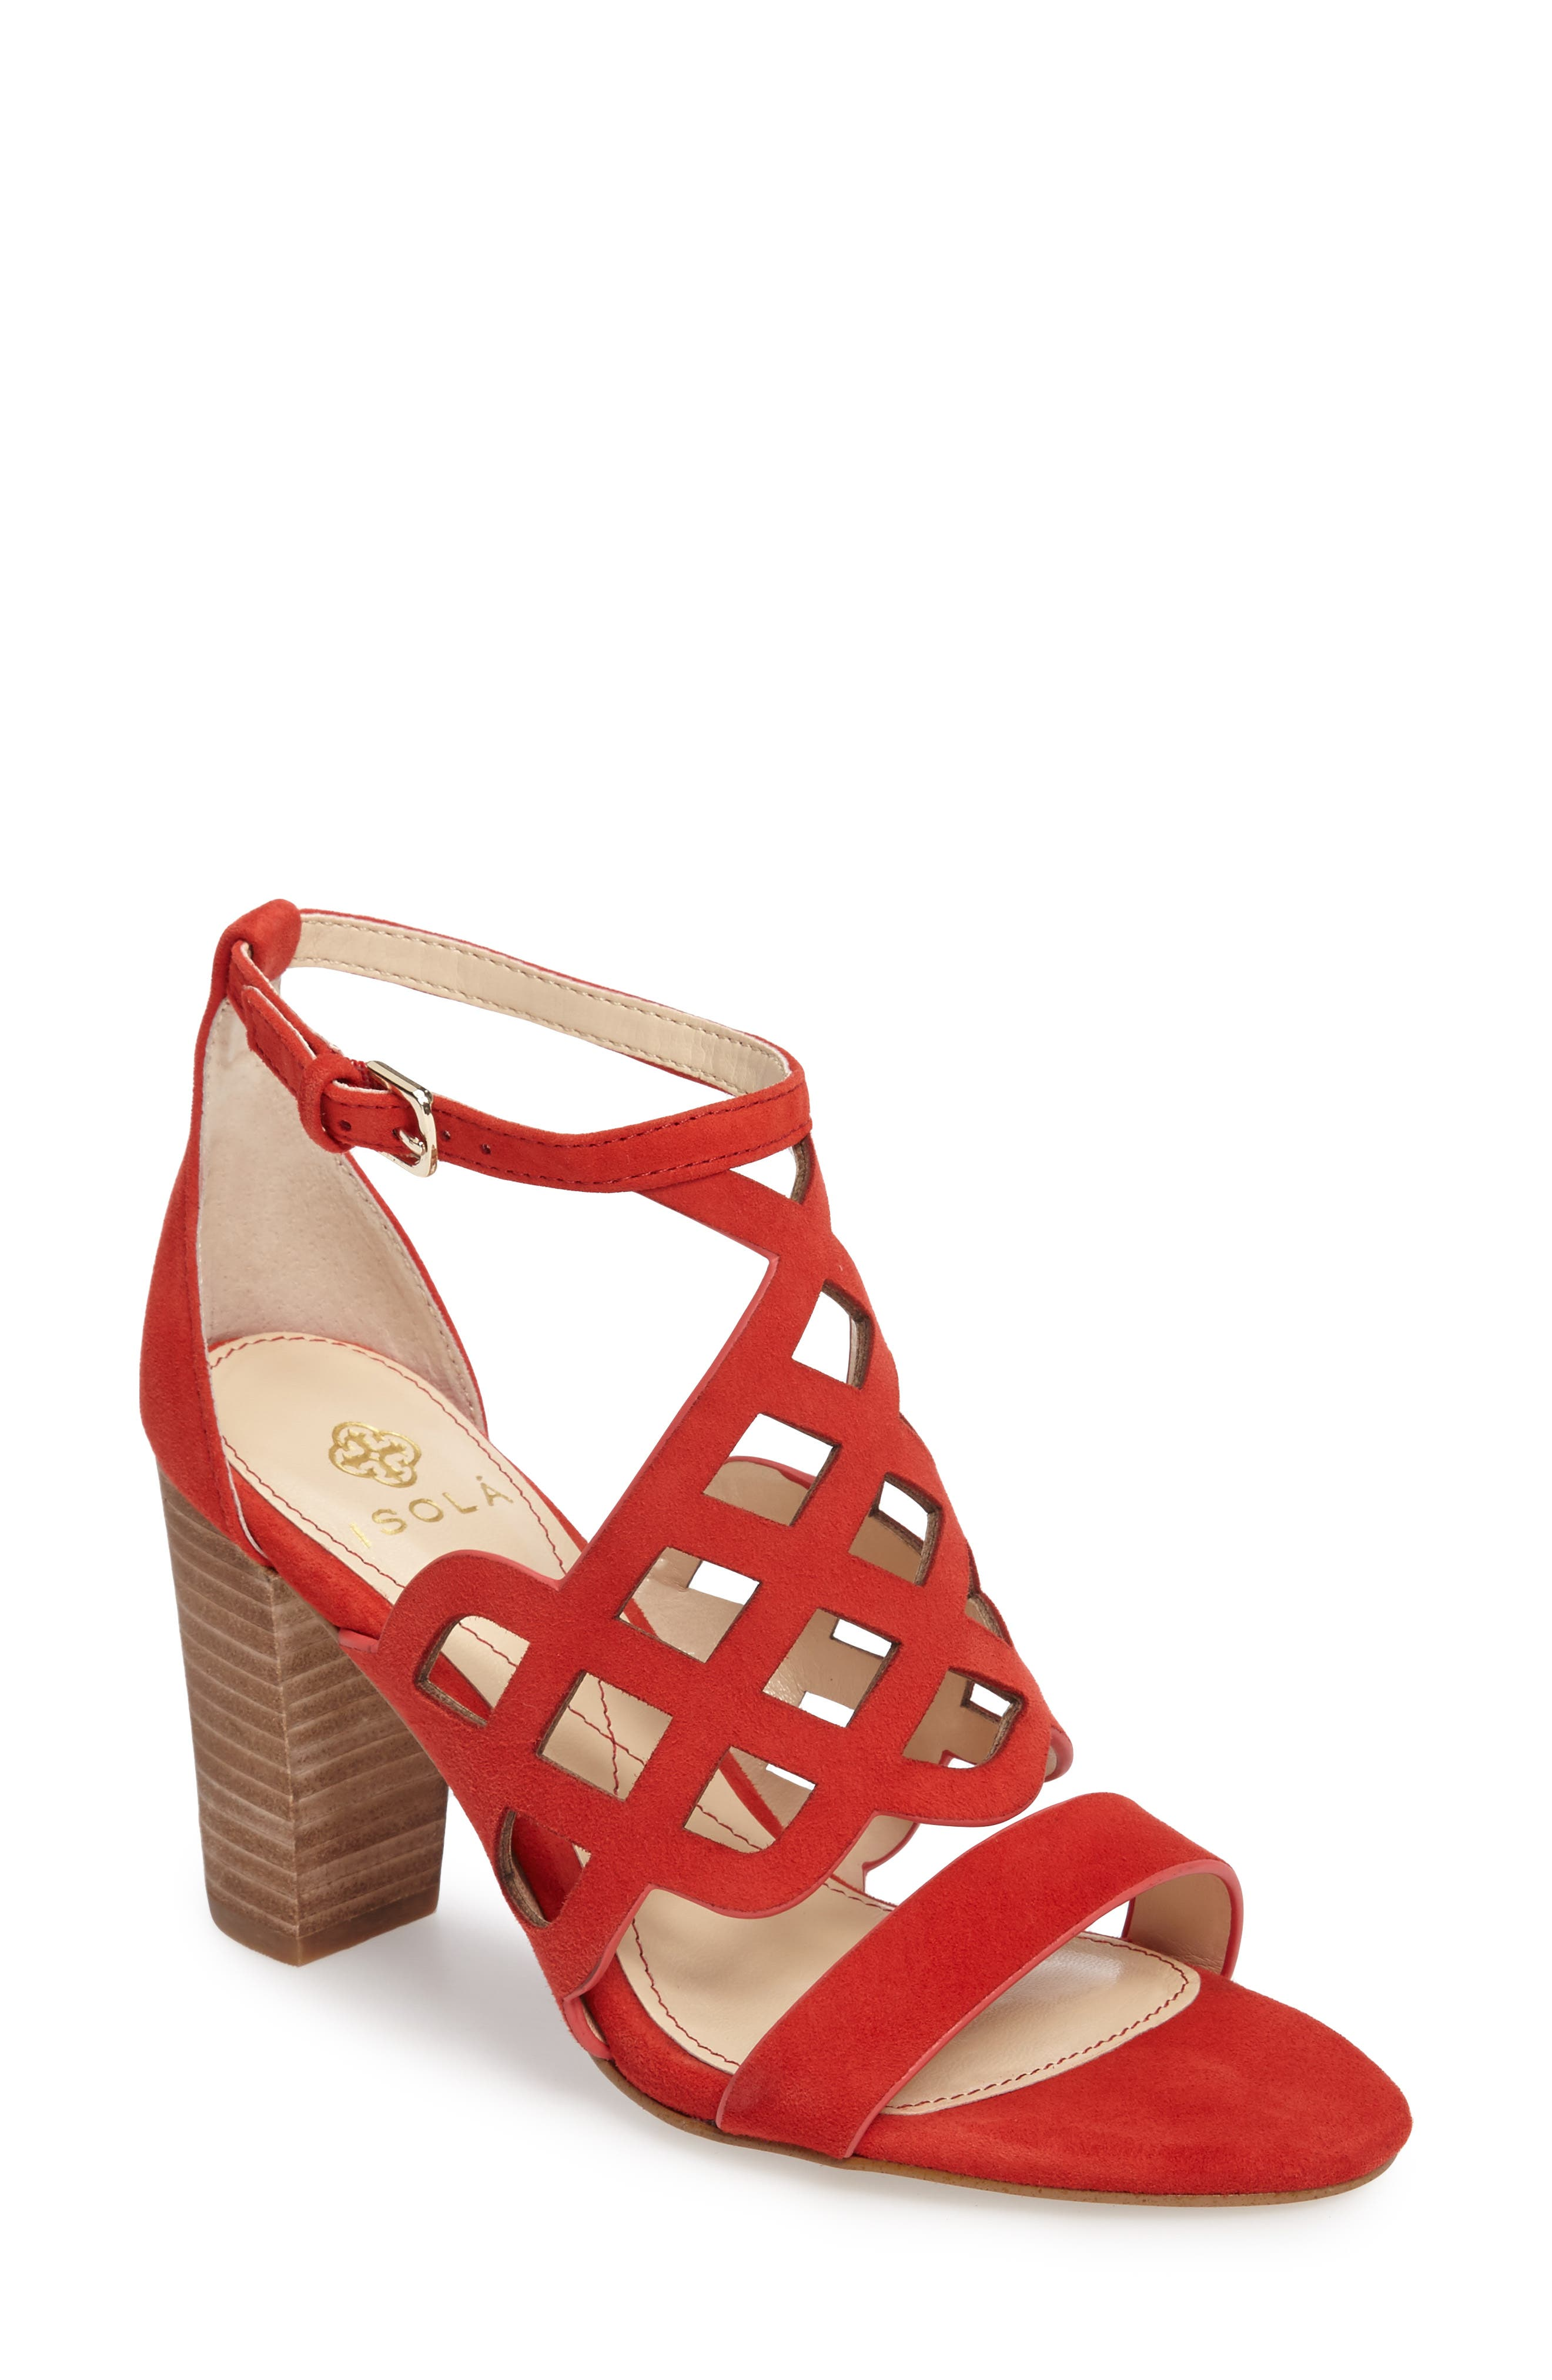 Despina Cutout Ankle Strap Sandal,                             Alternate thumbnail 2, color,                             LIPSTICK RED SUEDE